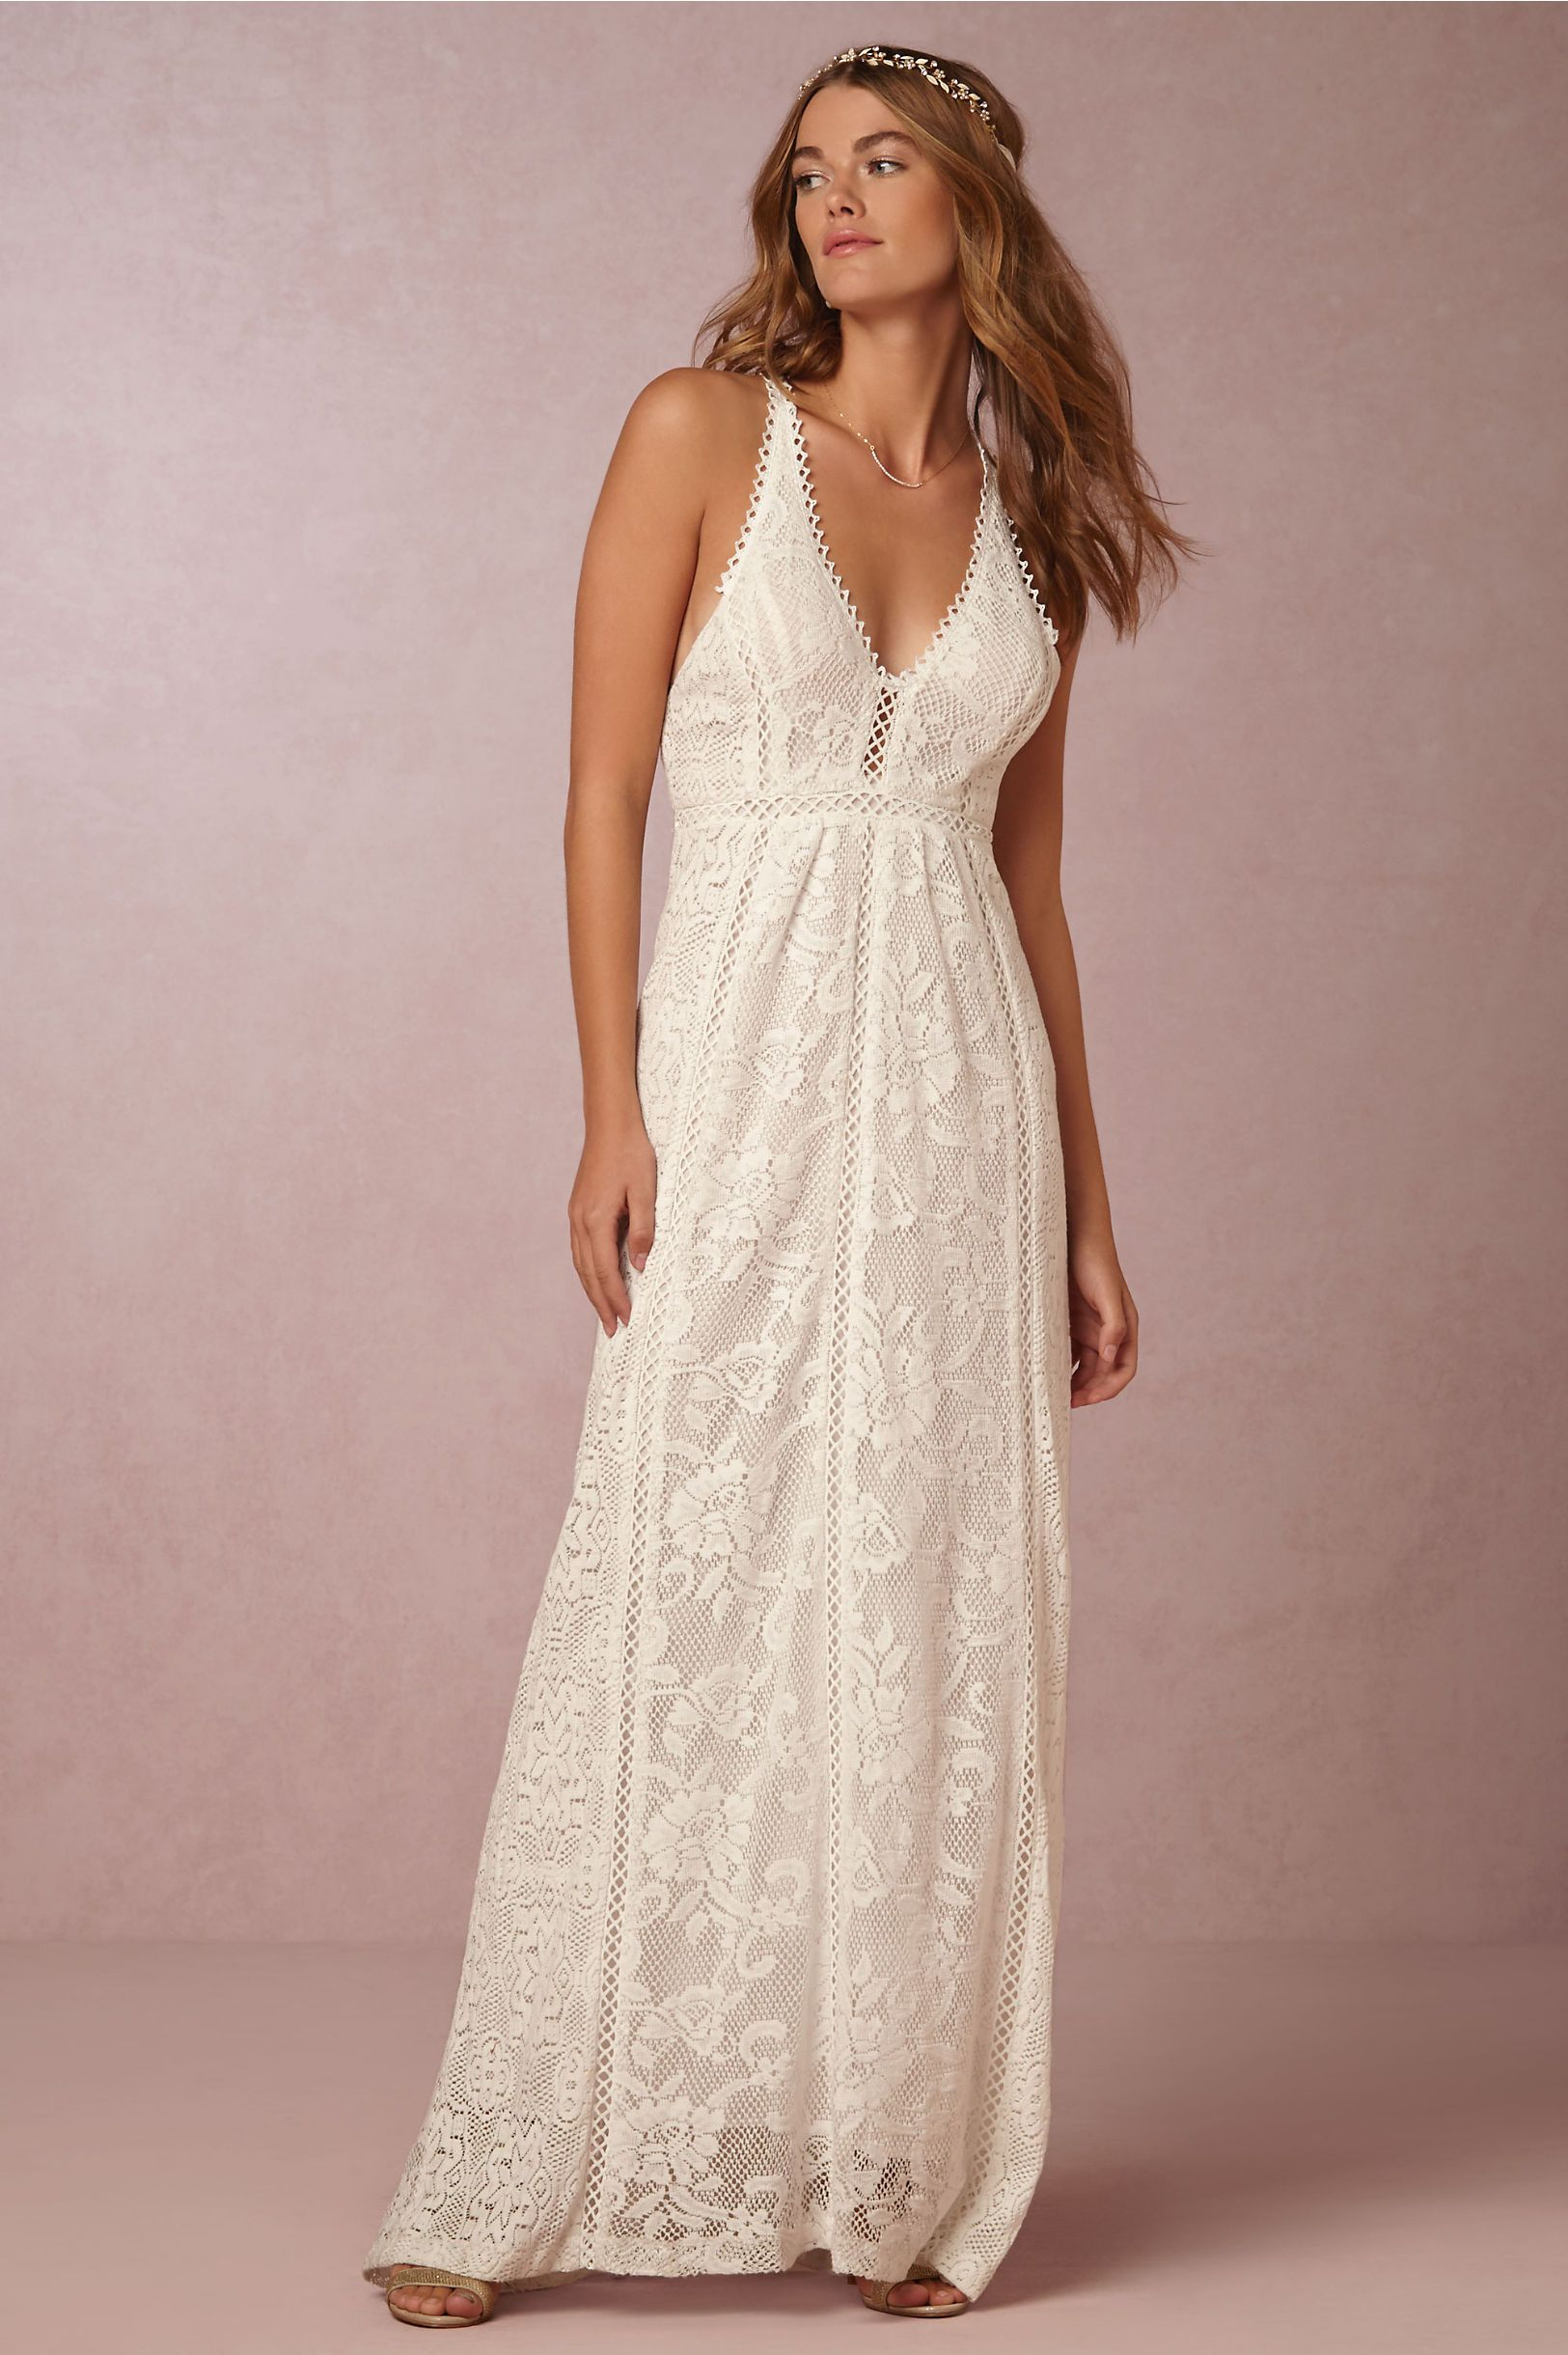 Beautiful Wedding Dresses for Beach Weddings | Vestido novia playa ...